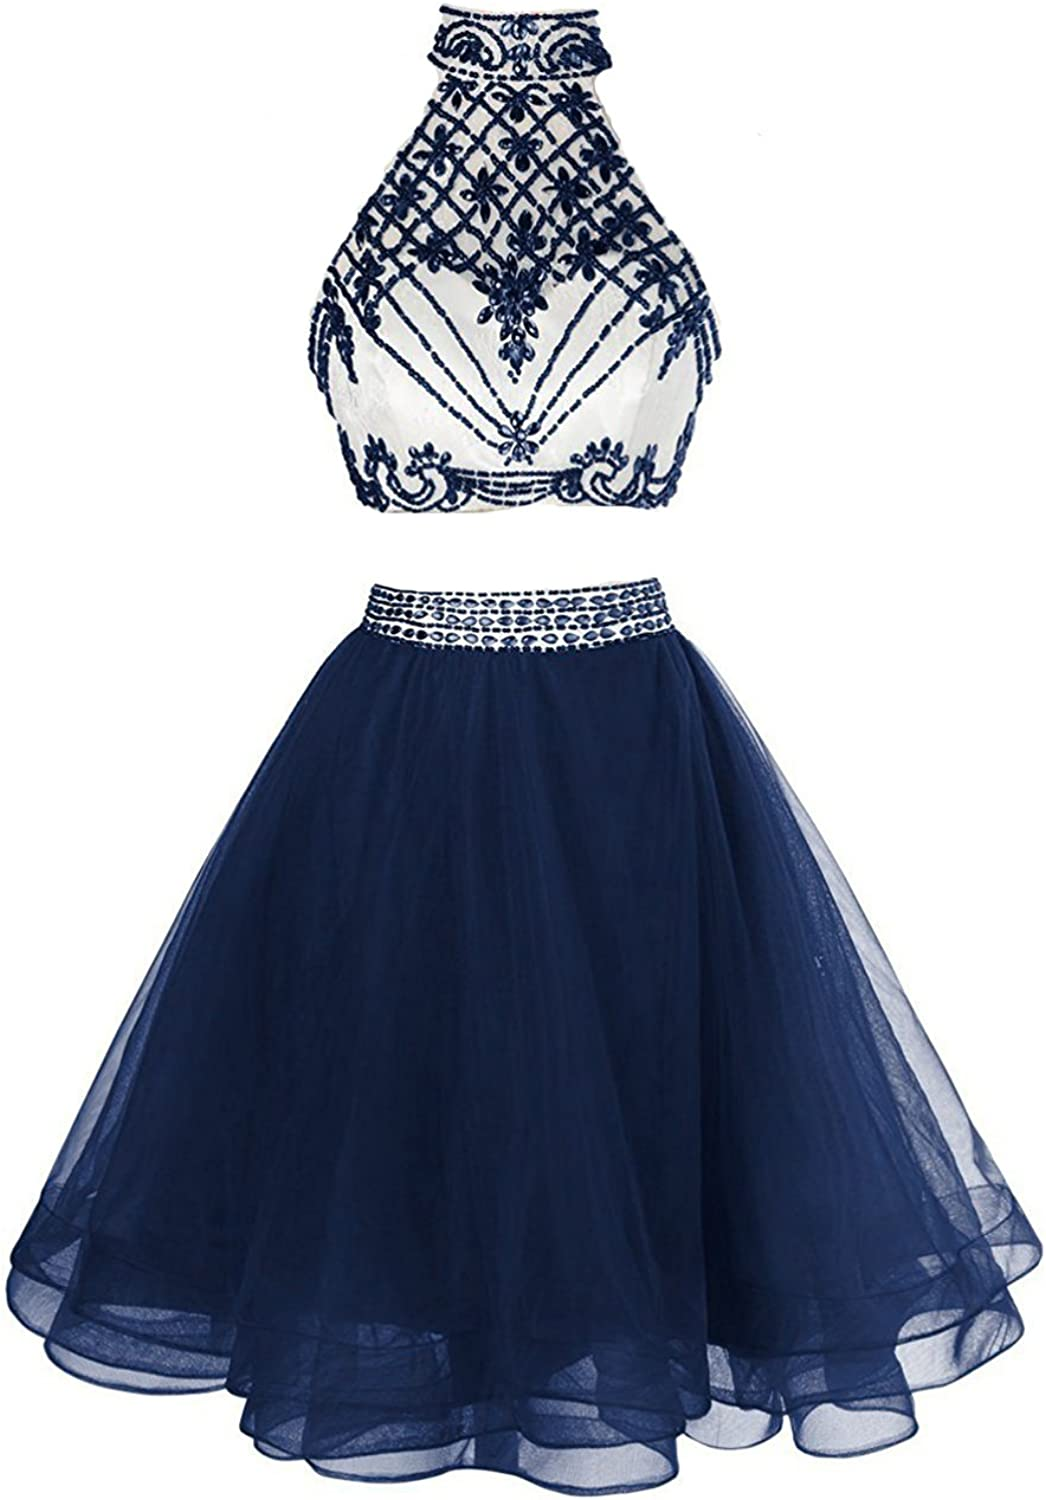 HIDRESS Women's High Neck Short Homecoming Dresses Two Pieces Cocktail Gowns BQ079